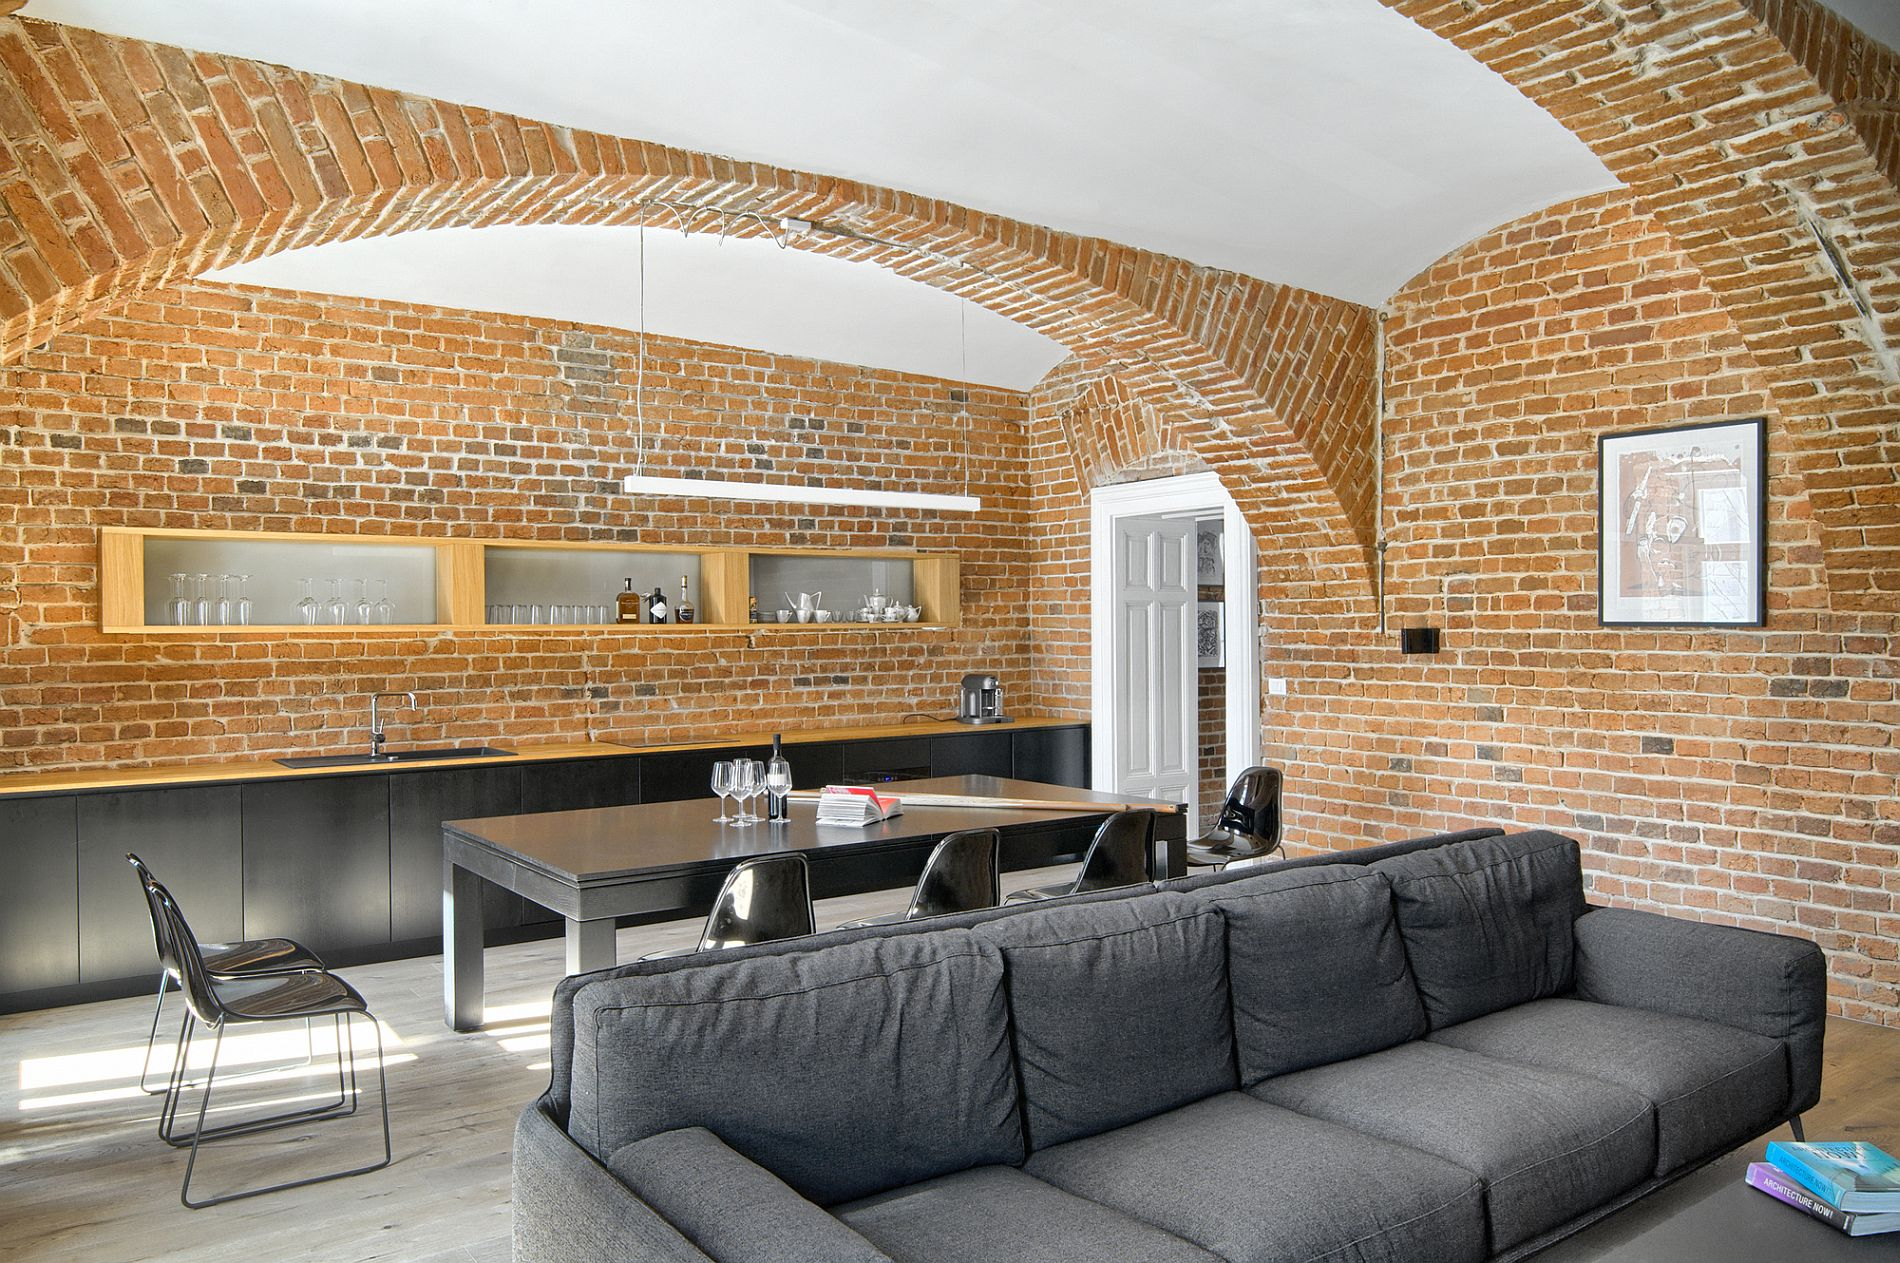 Kitchen, dining area and living of the 100 square meter apartment in Maribor, Slovenia